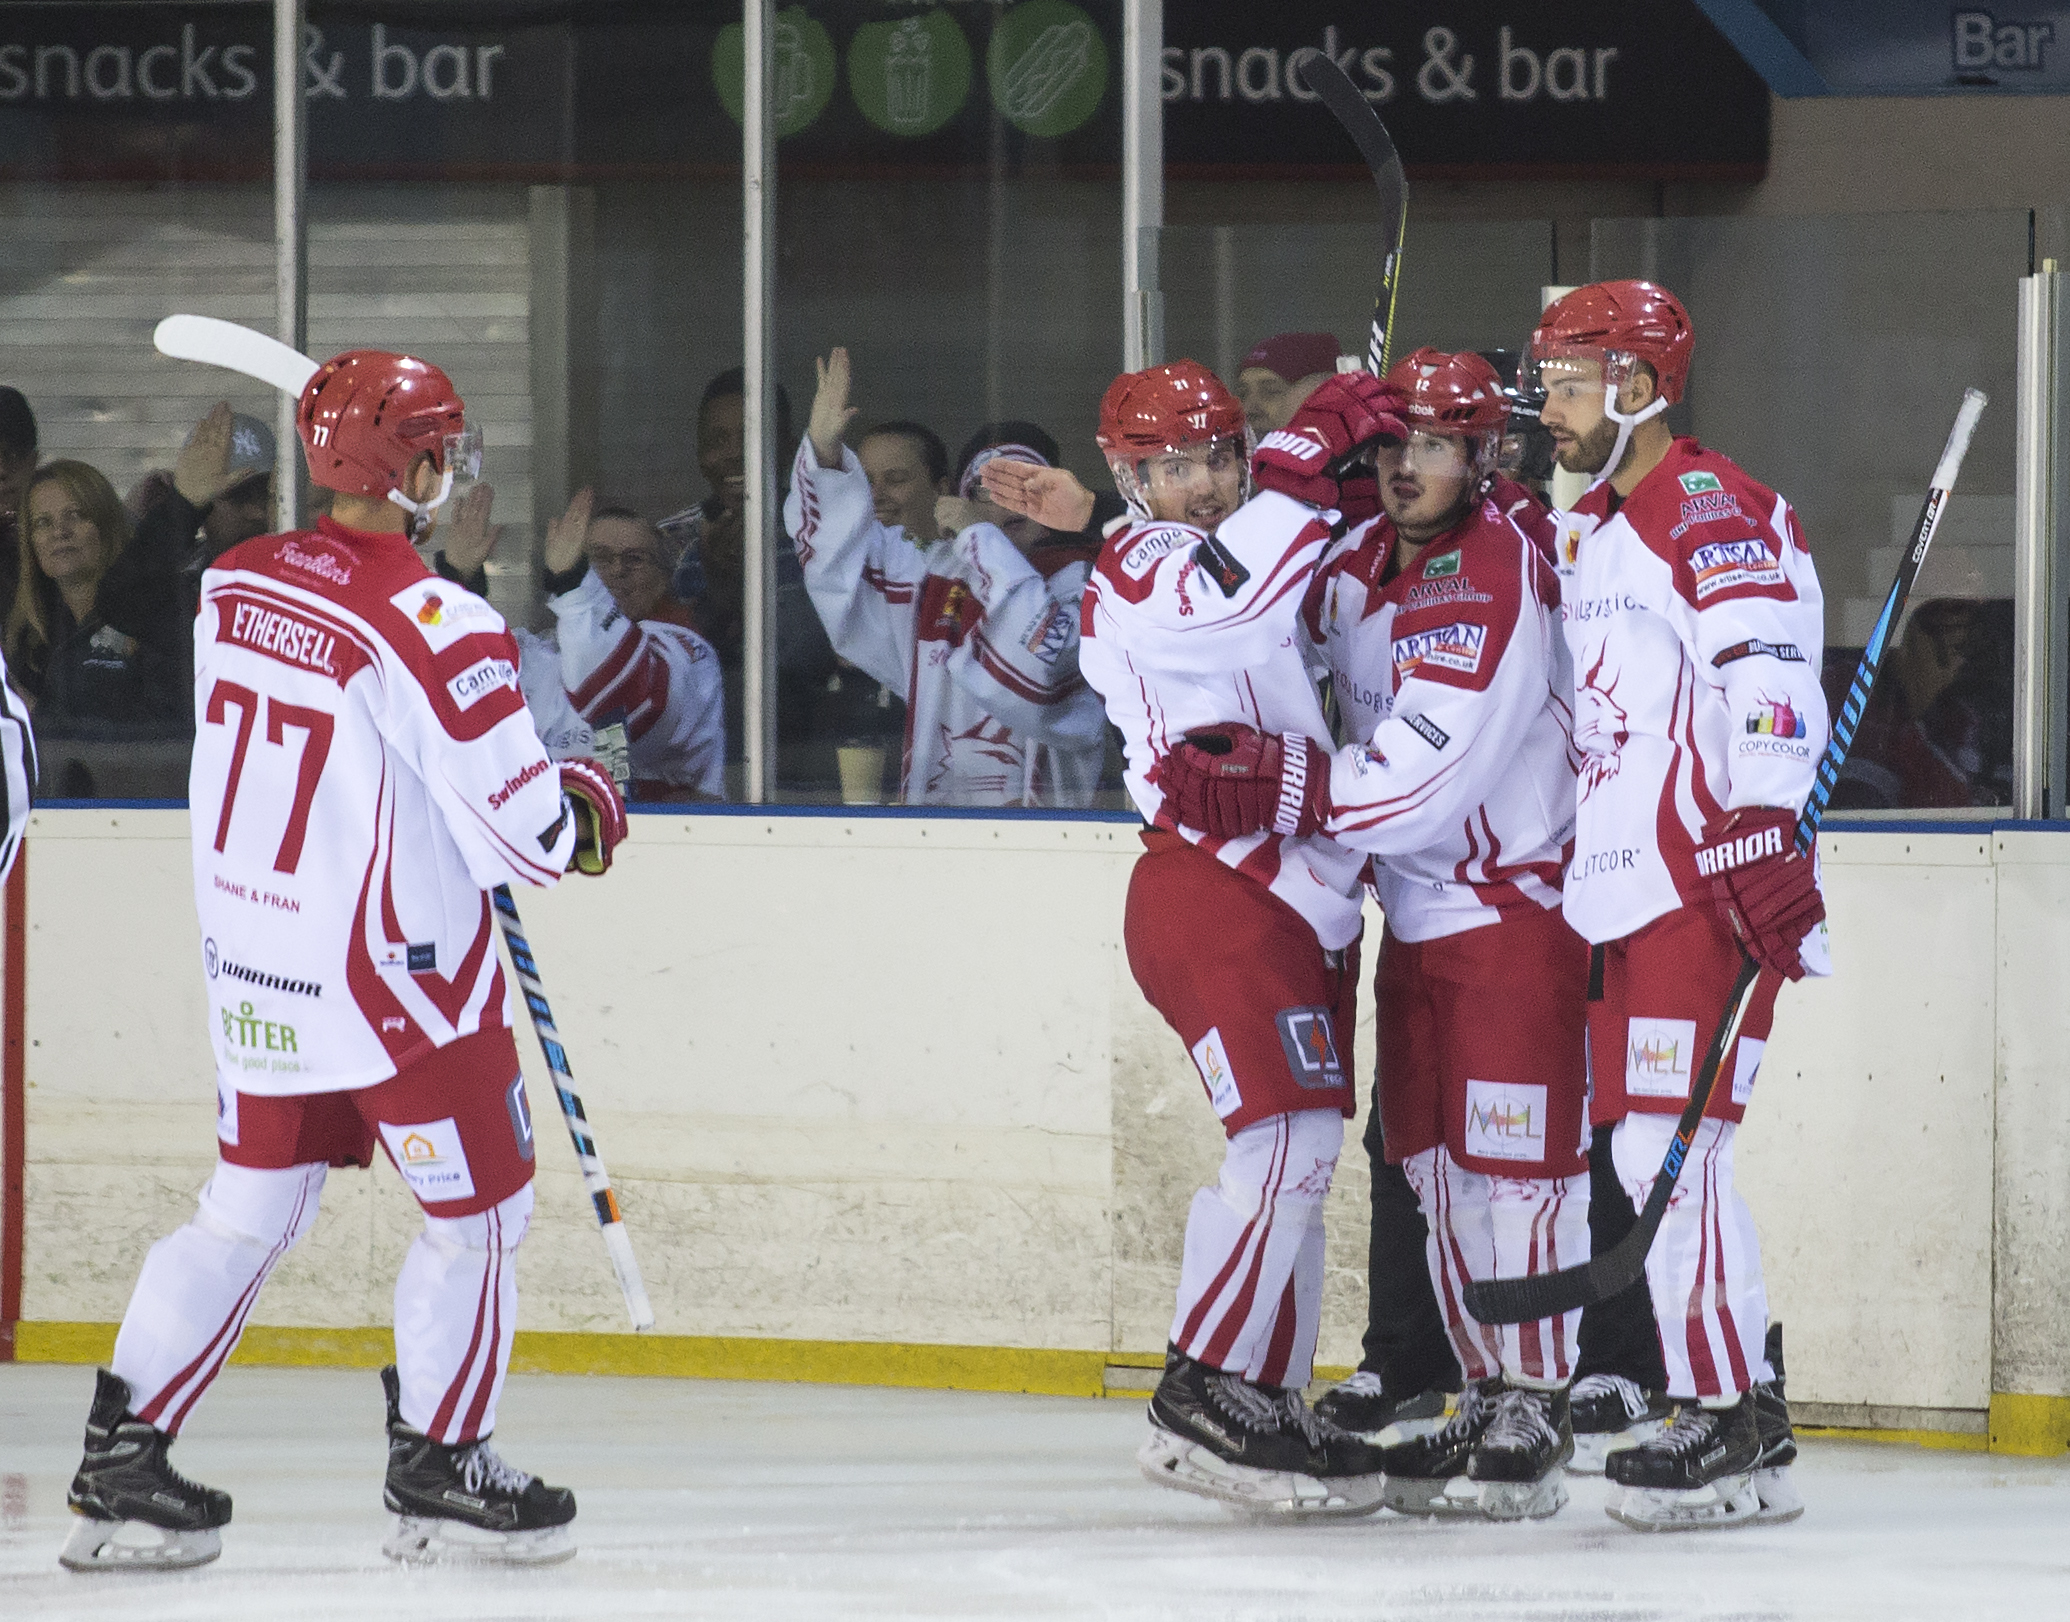 Swindon Wildcats Vs Streatham, Floyd Taylor goal, Picture Ryan Ainscow 08.09.18.